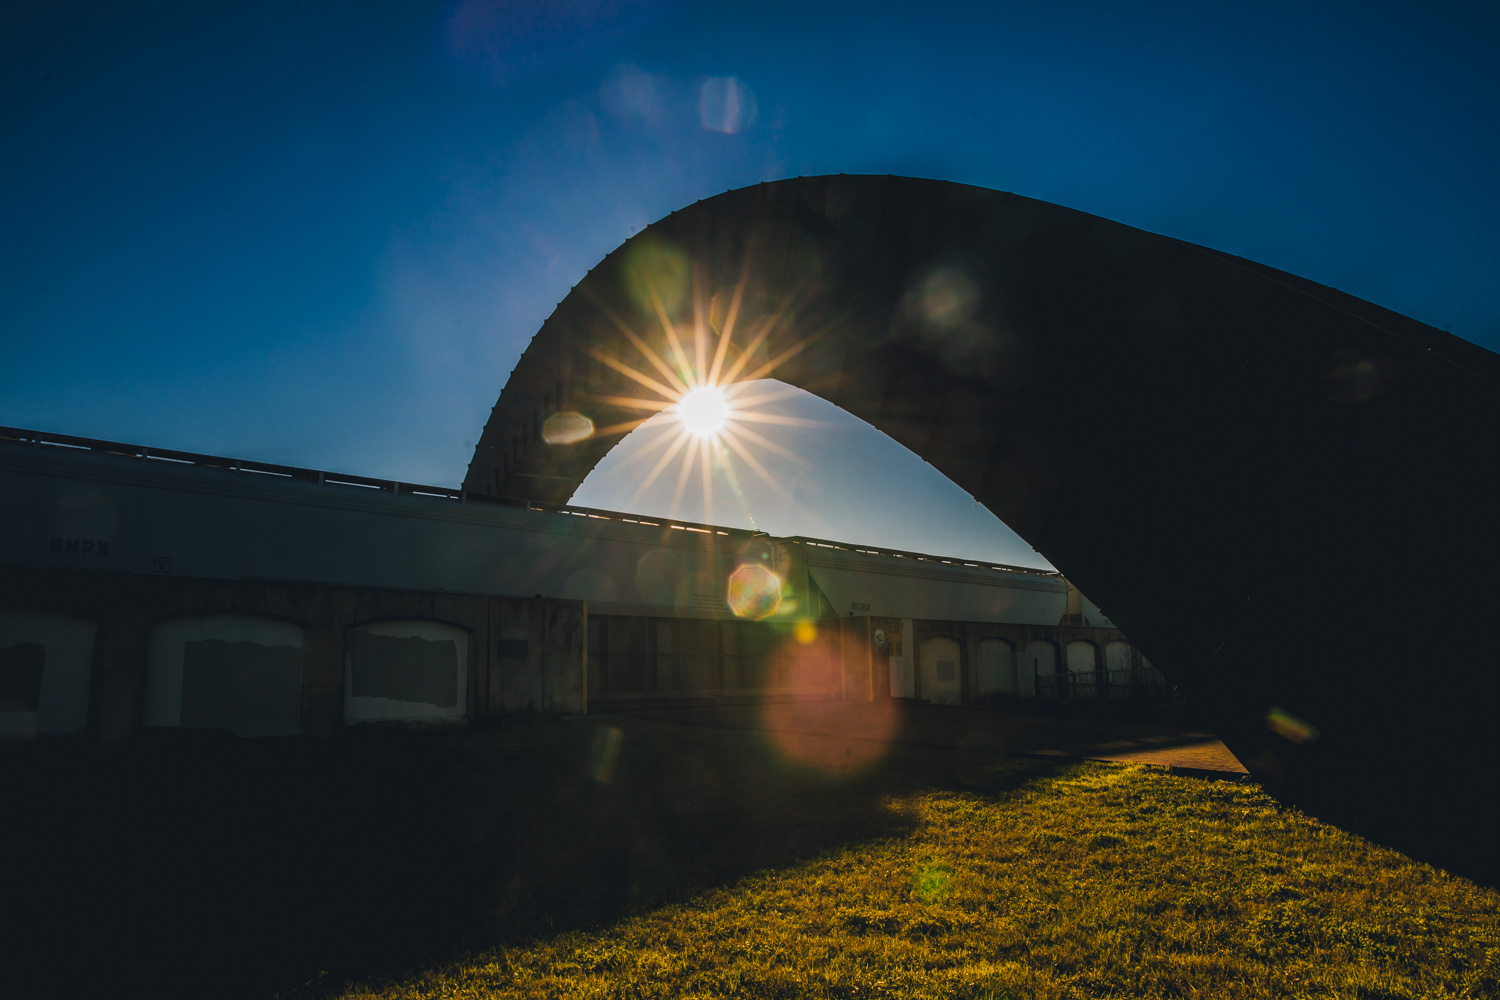 I shot this sun starburst at Crescent Park in New Orleans!